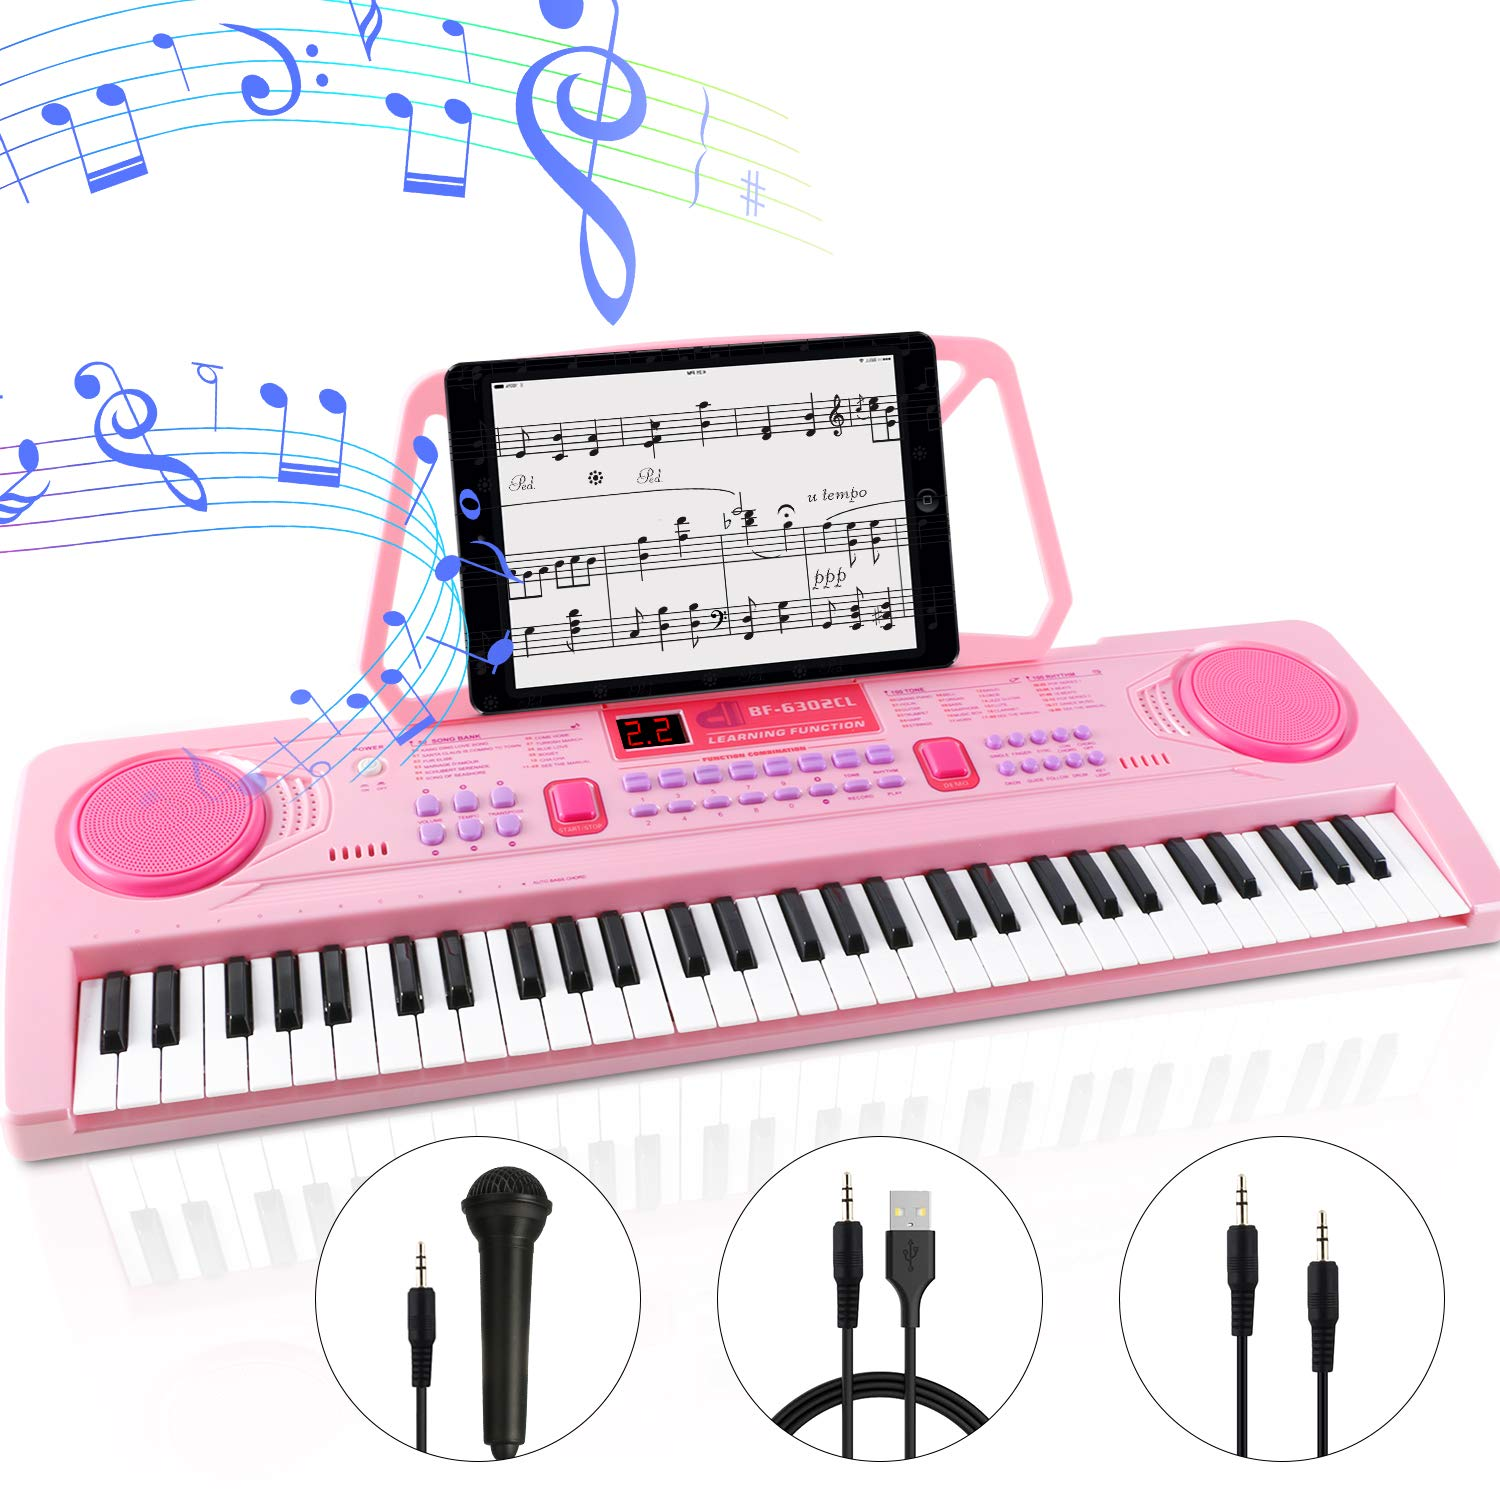 WOSTOO Electric Keyboard Piano for Kids-Portable 61 Key Electronic Musical Karaoke Keyboard, Learning Keyboard for Children w/Drum Pad, Recording, Microphone, Pink by WOSTOO